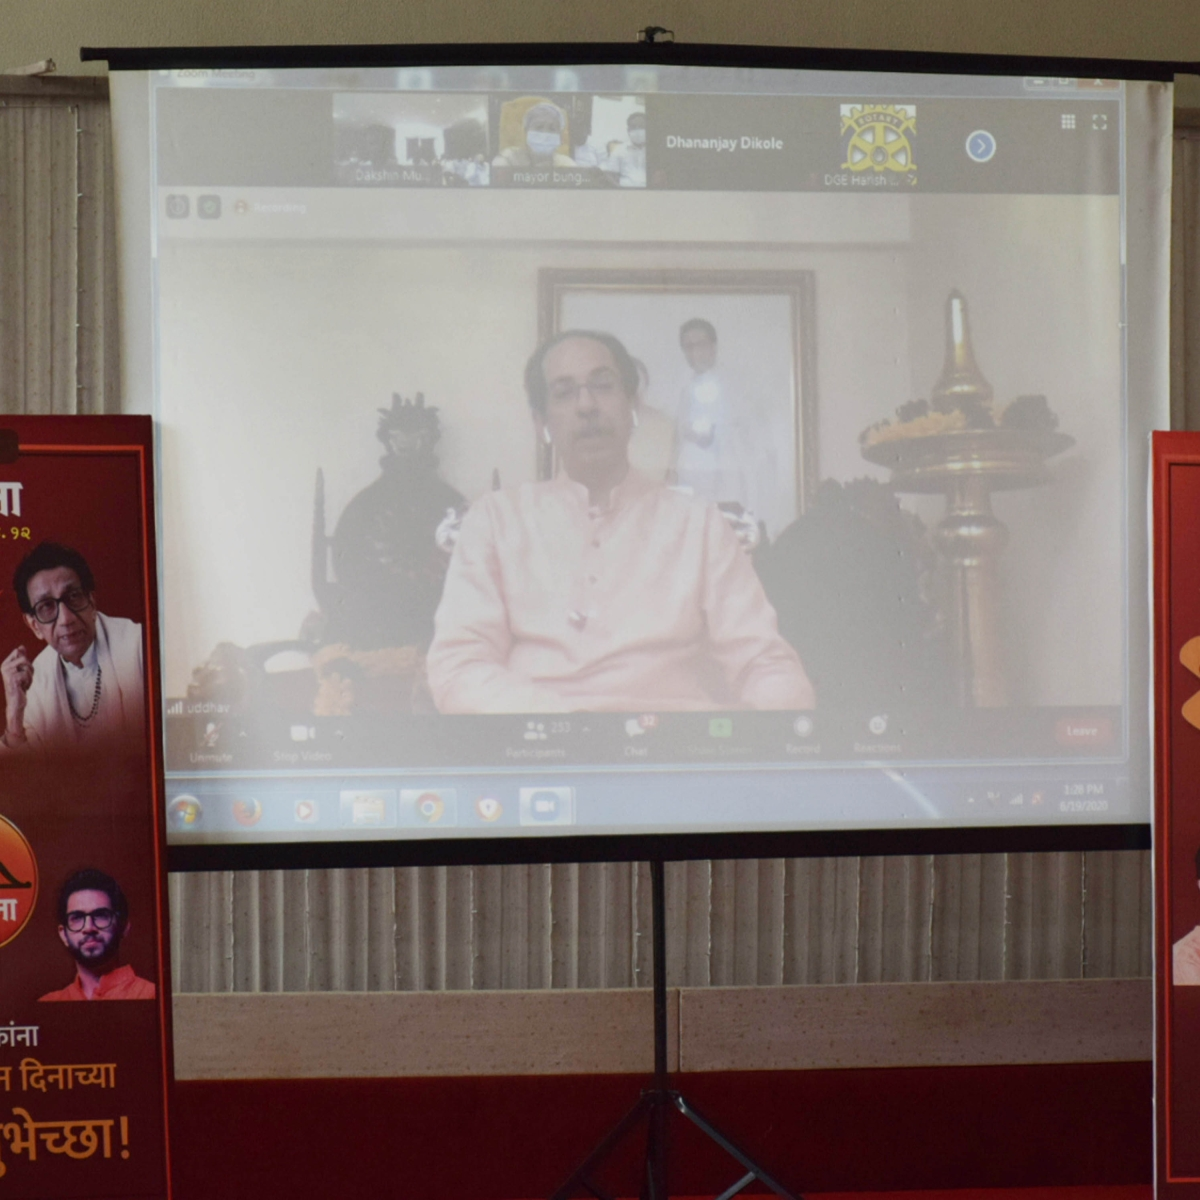 One day, a Shiv Sainik will be country's Prime Minister: Uddhav Thackeray